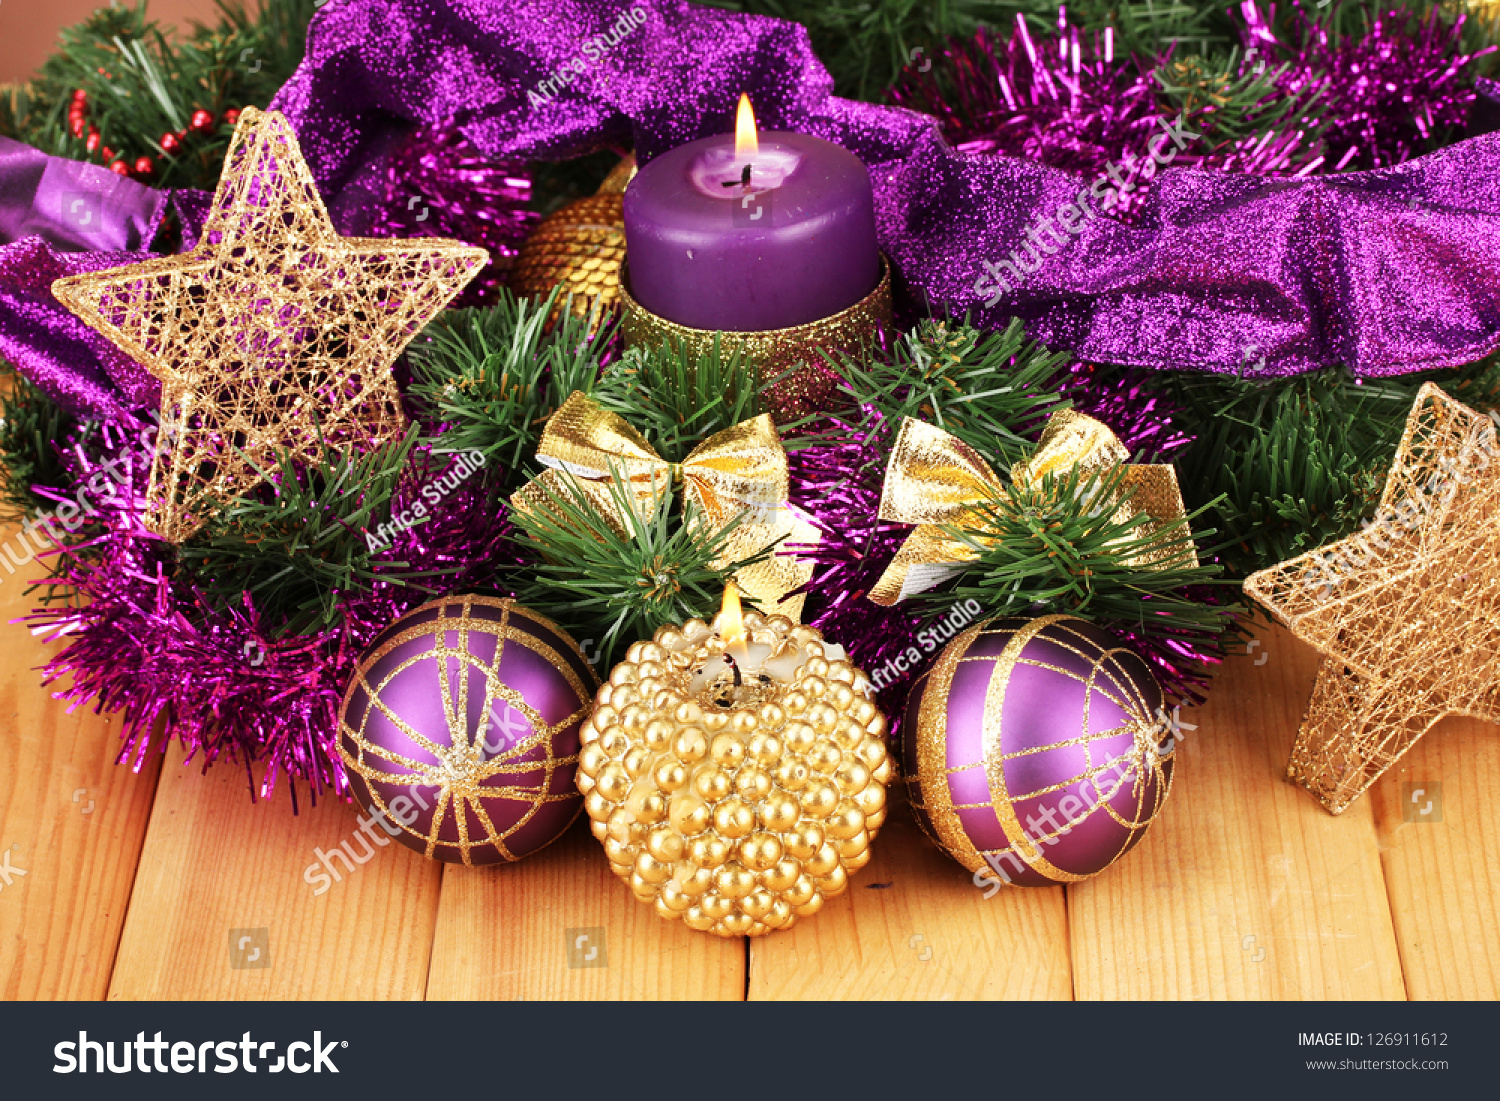 id 126911612 - Purple And Gold Christmas Decorations